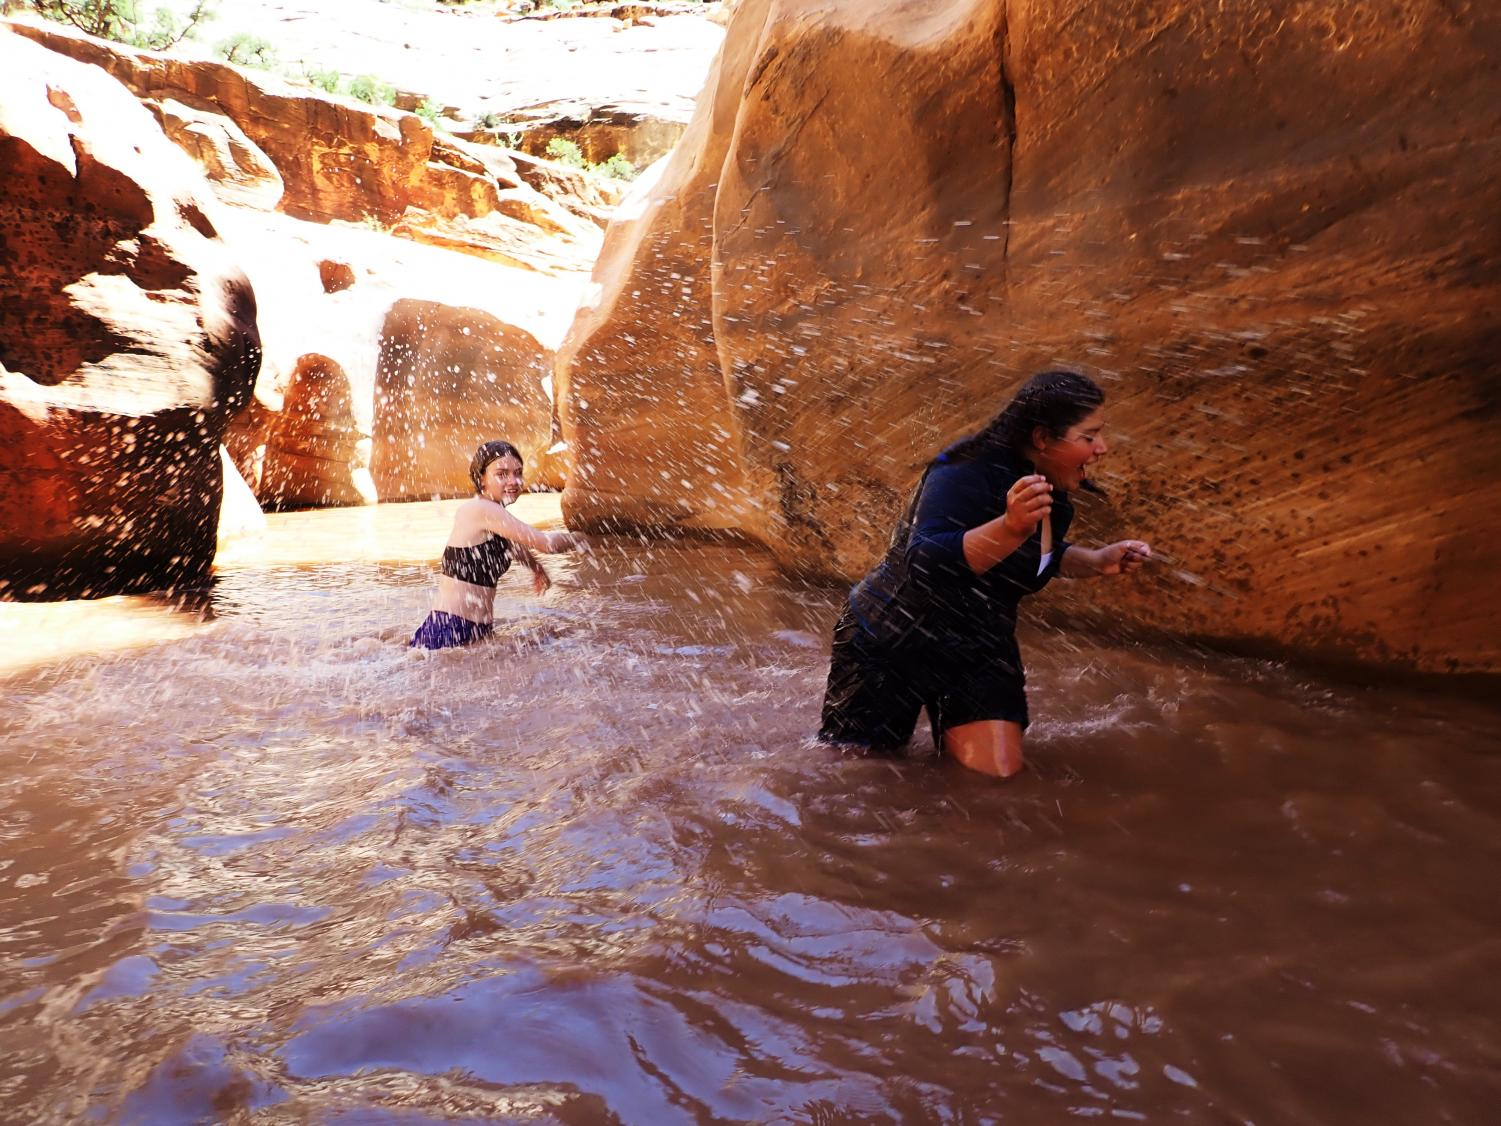 Seventh grade students Sofia D'Addario and Annabelle Terner splash in the water of a Utah canyon. This image won the photo competition.